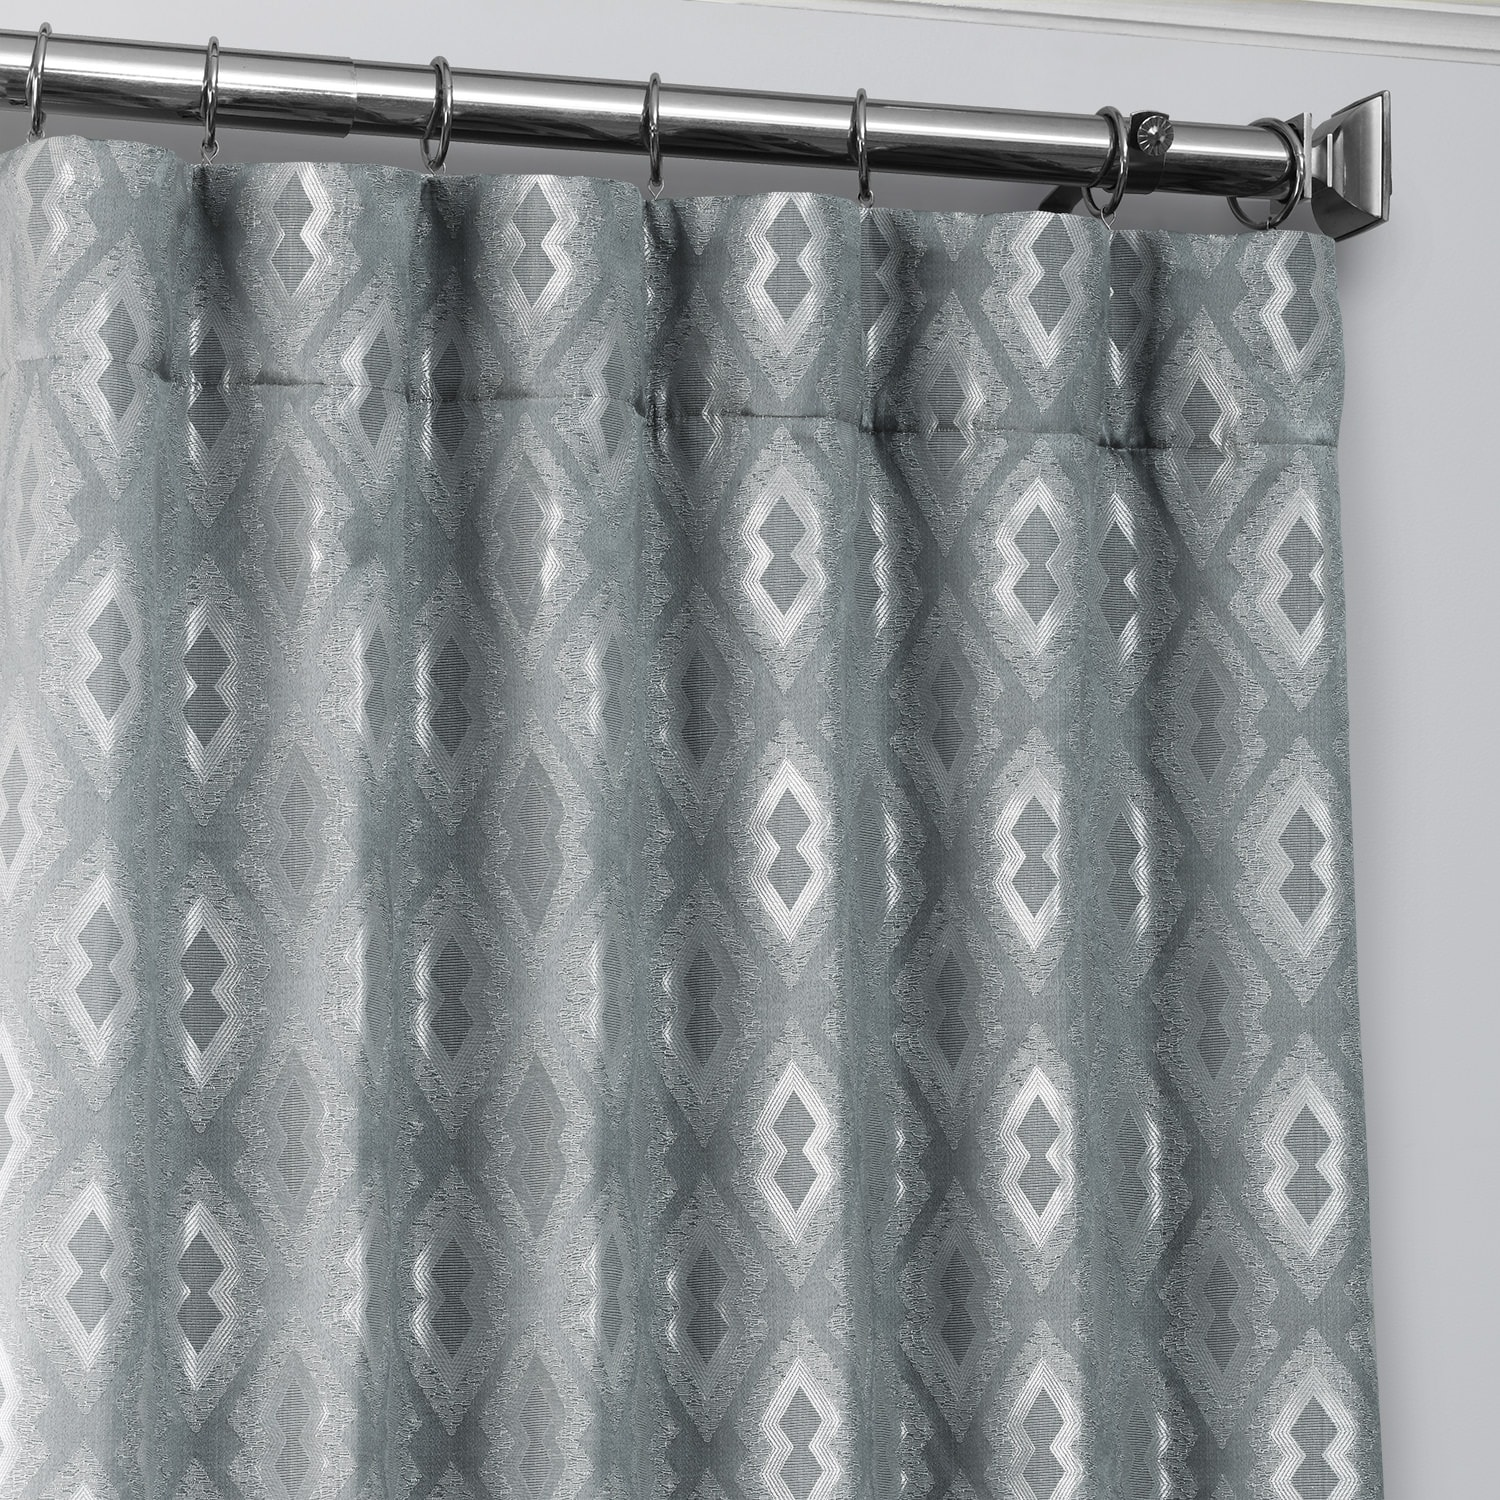 Paragon Blue Designer Jacquard Curtain